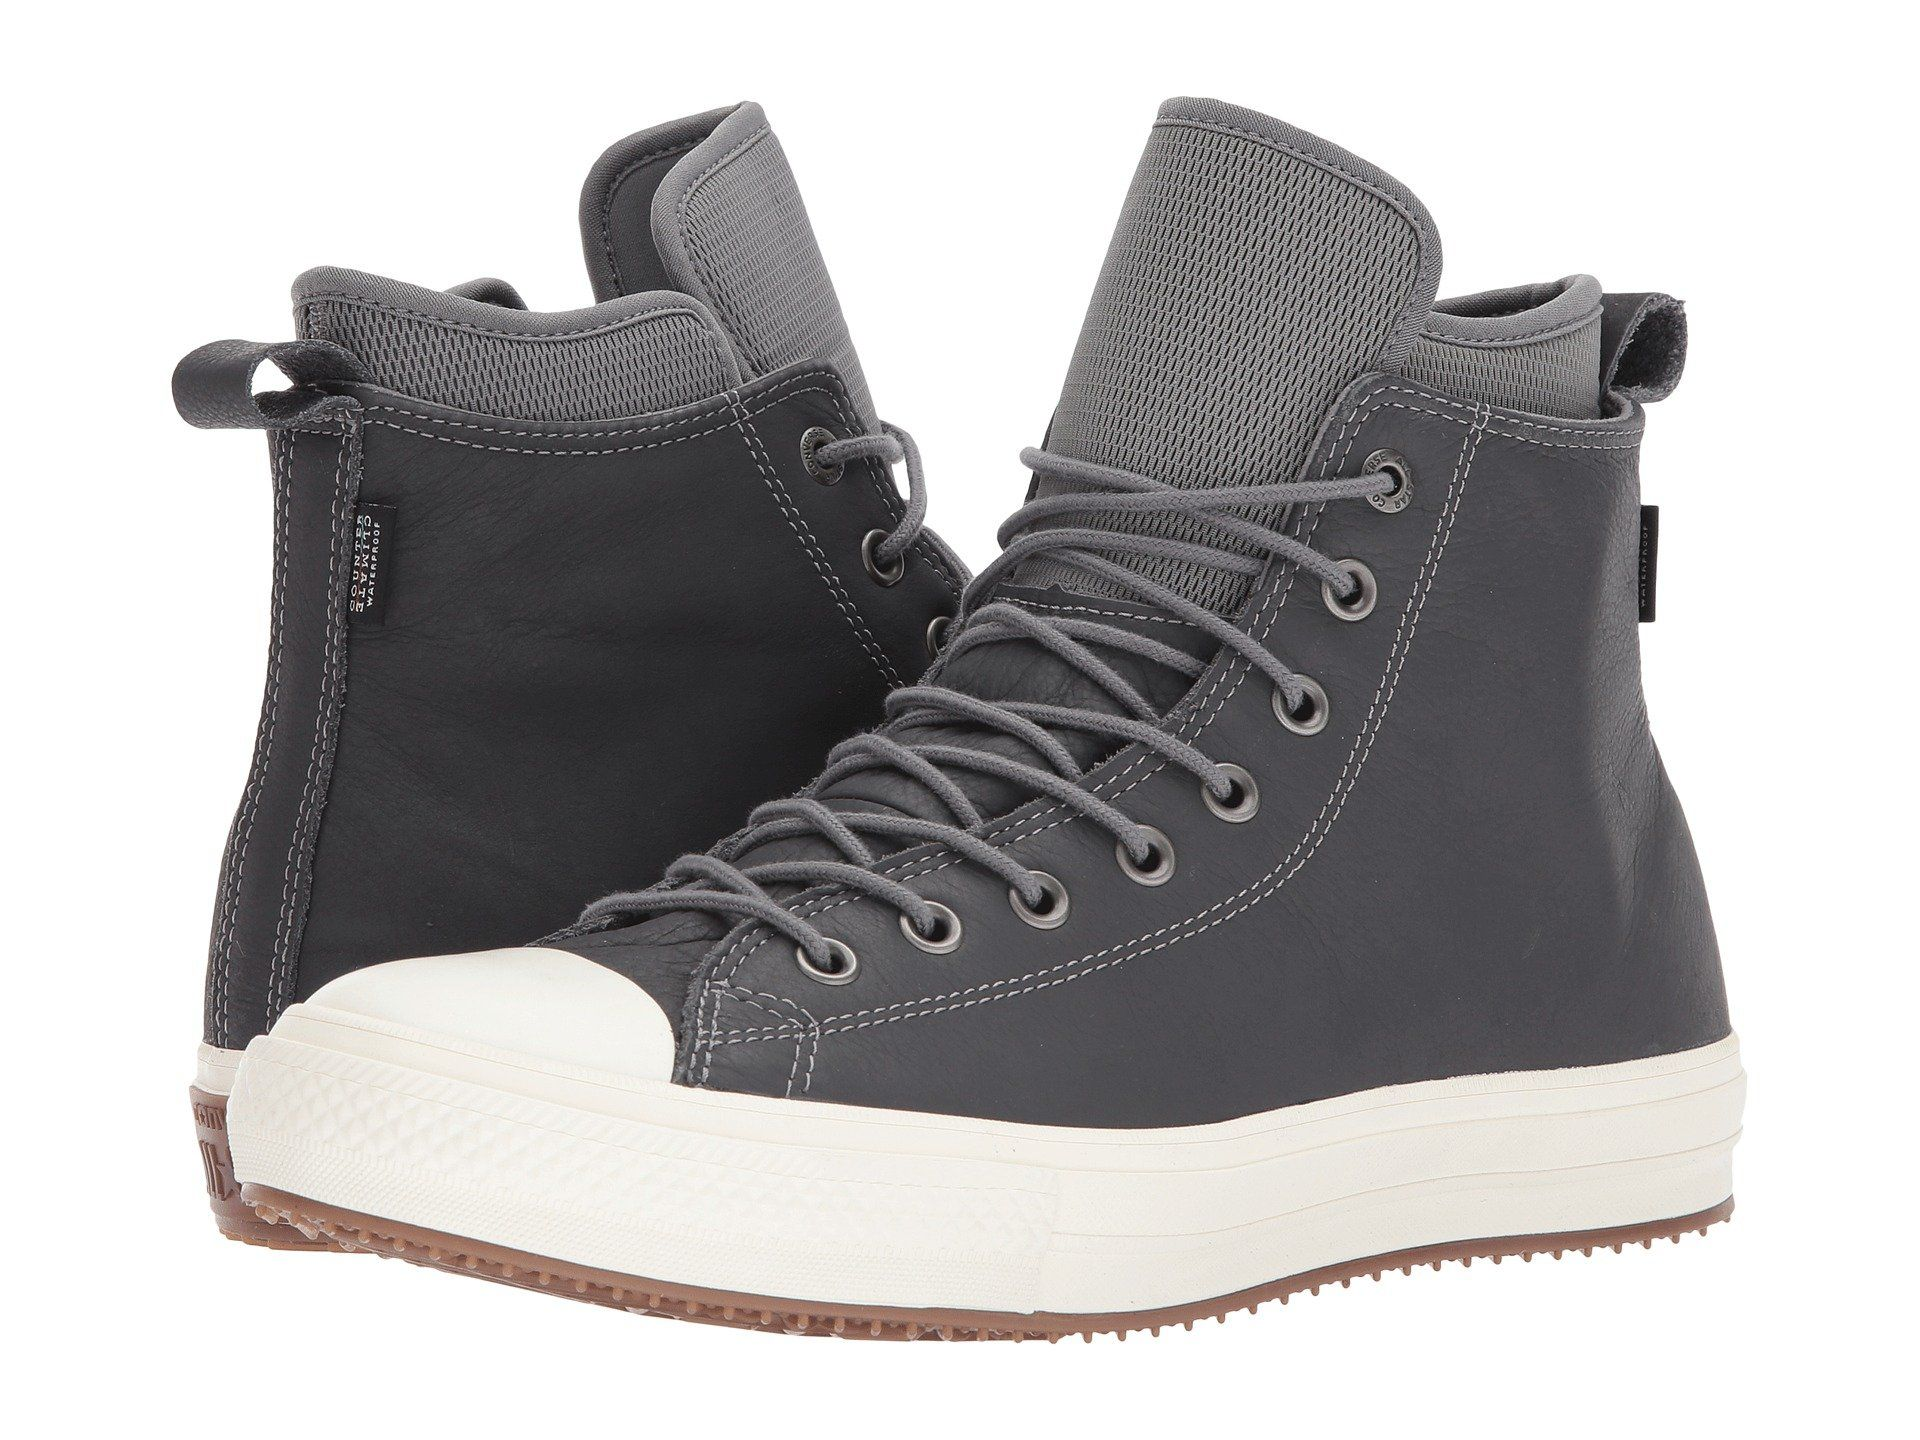 ff4666925a03 CONVERSE Chuck Taylor® All Star® Waterproof Boot Nubuck Hi.  converse   shoes